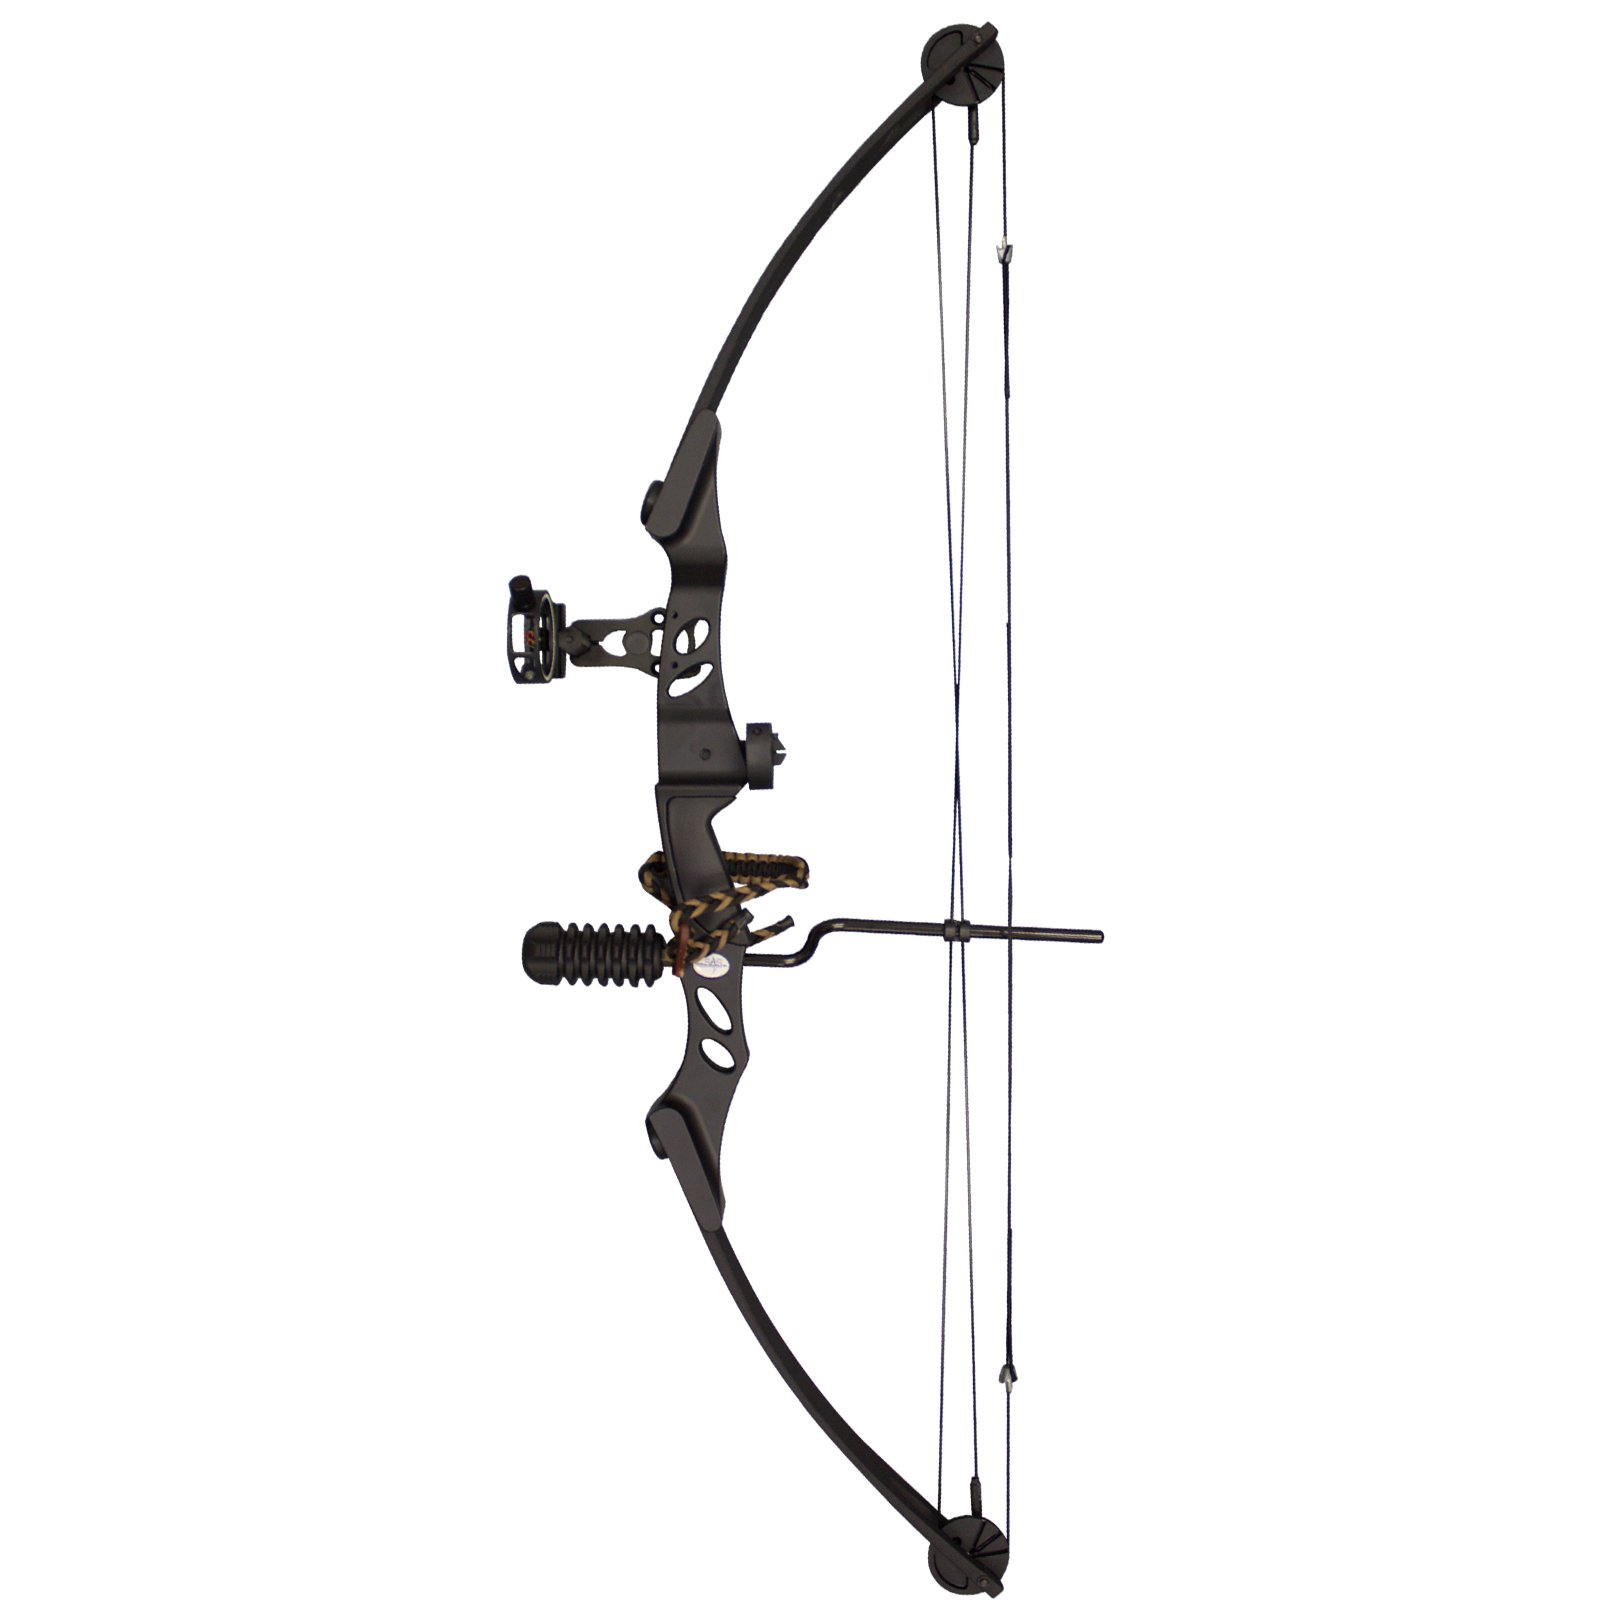 SAS Siege 55 lb Compound Bow w/ 5-Spot Paper Target - Black with Accessories